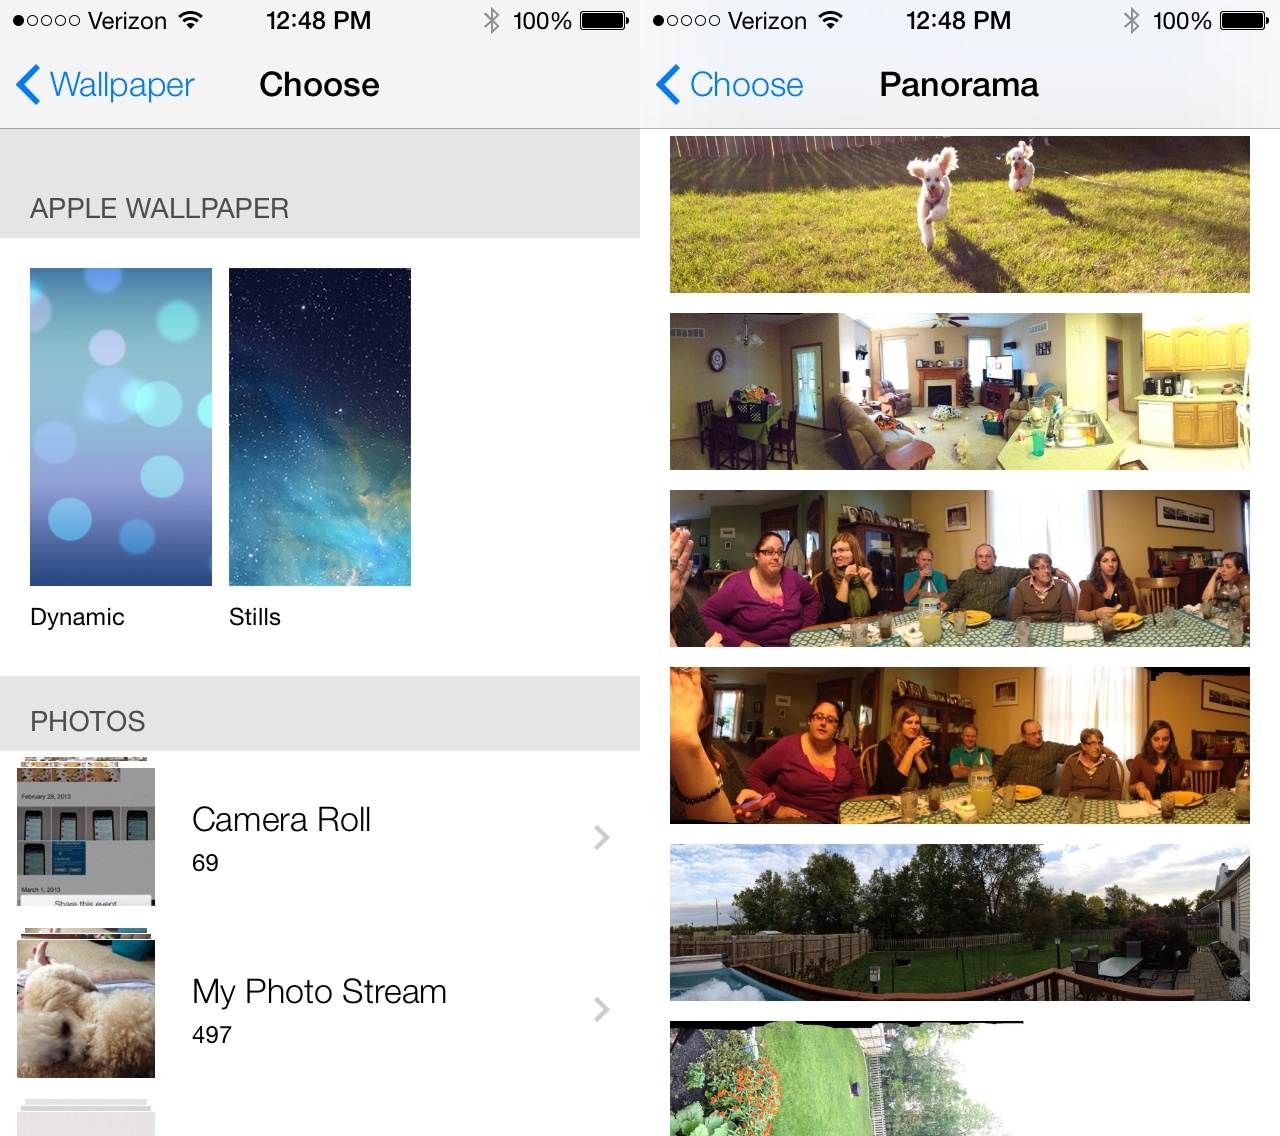 Use a panoramic image as a wallpaper in iOS 7.